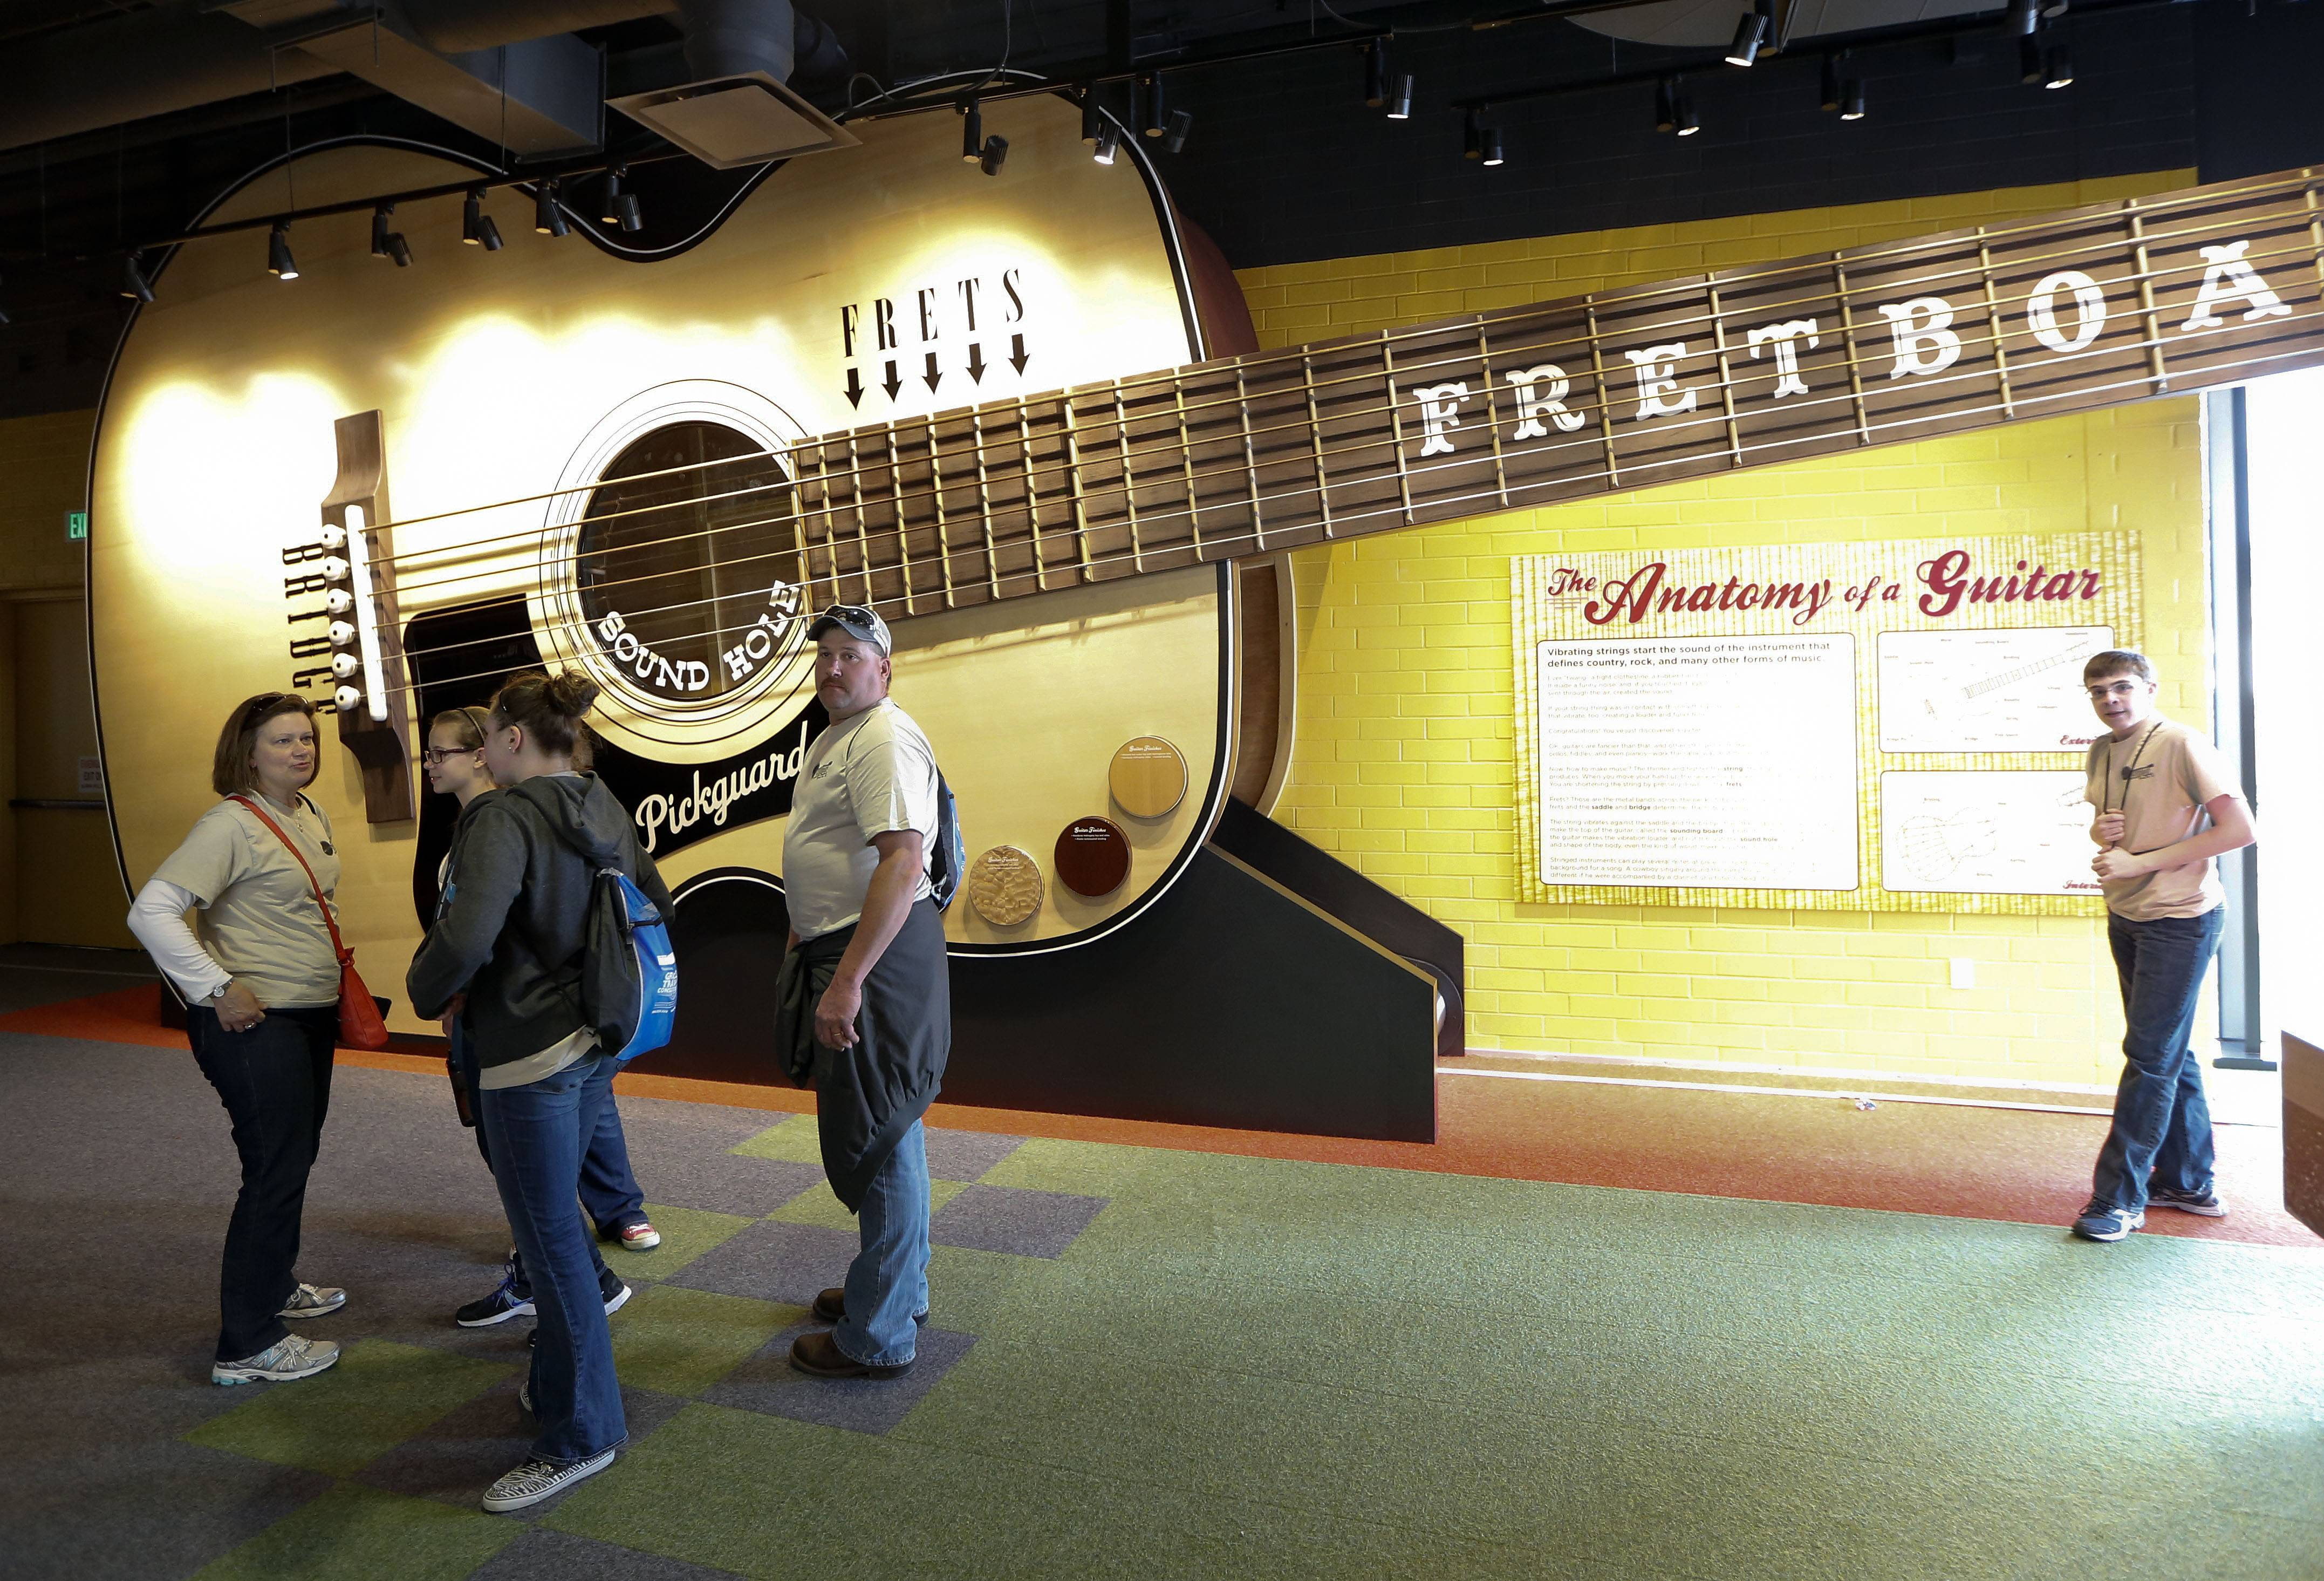 A 52-foot replica of an acoustic guitar is part of a new section of the Country Music Hall of Fame and Museum in Nashville, Tenn. Educational exhibits are part of the $100 million expansion.